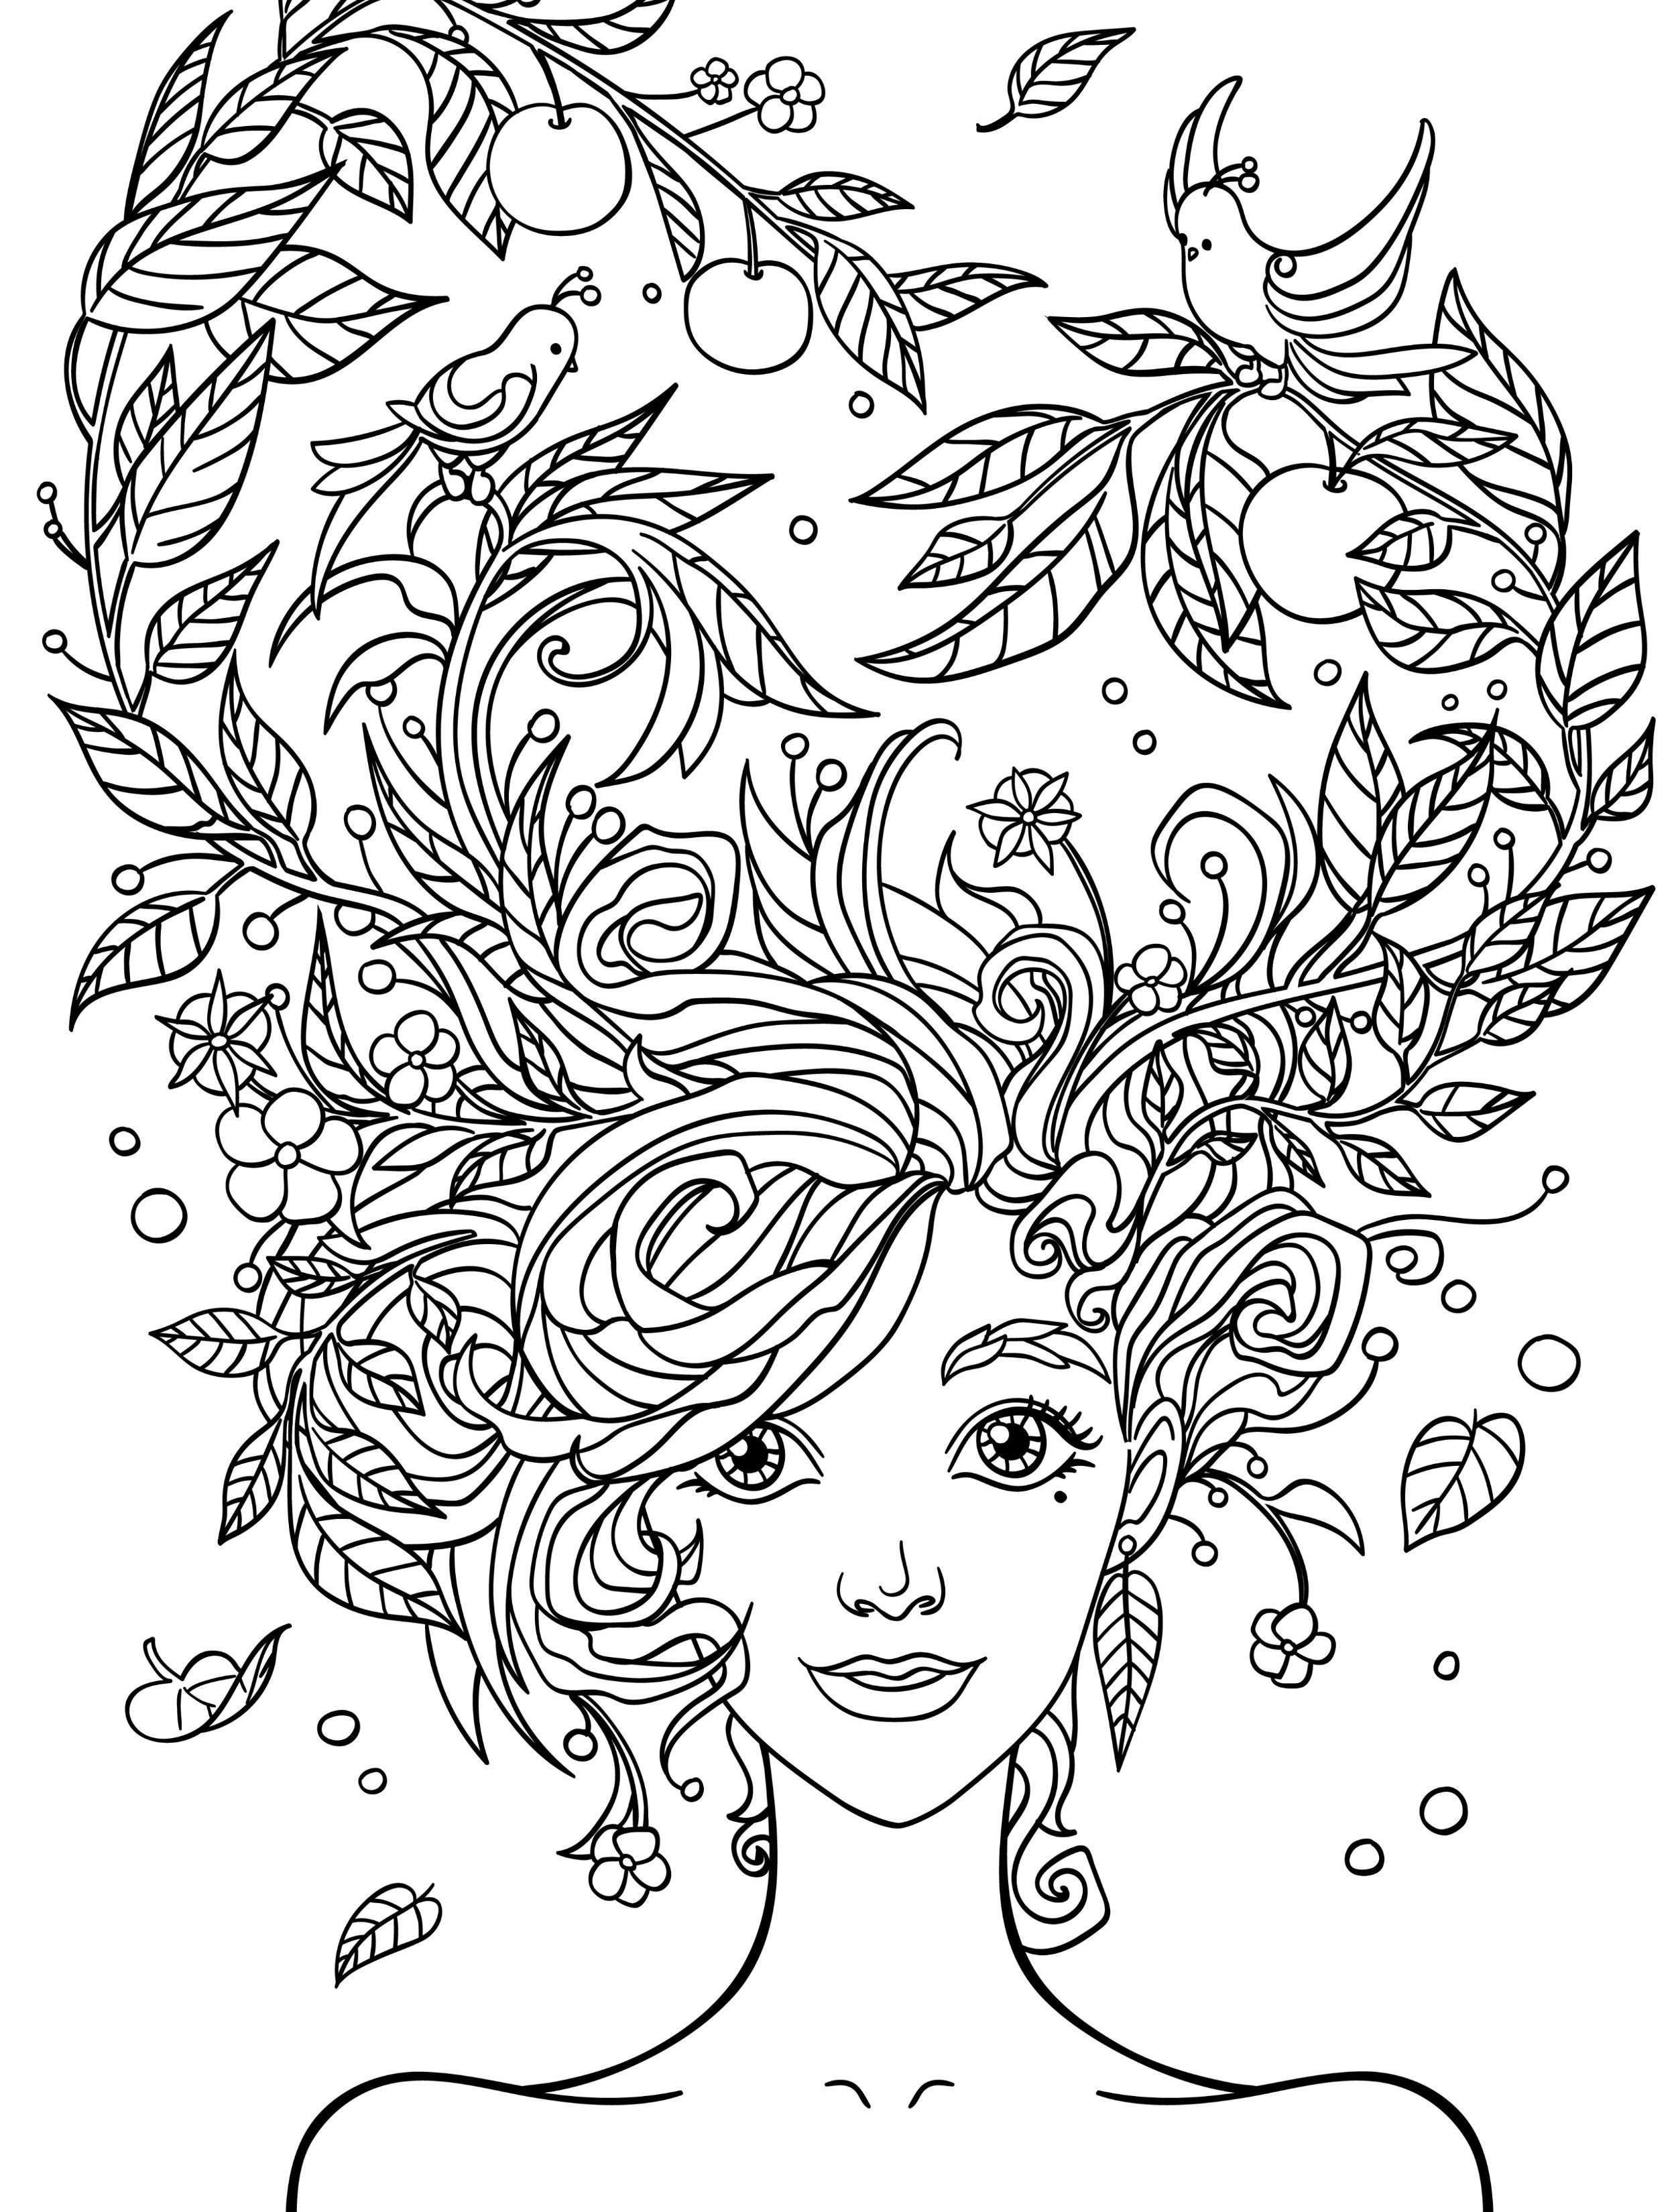 10 Crazy Hair Adult Coloring Pages Mermaid Coloring Pages